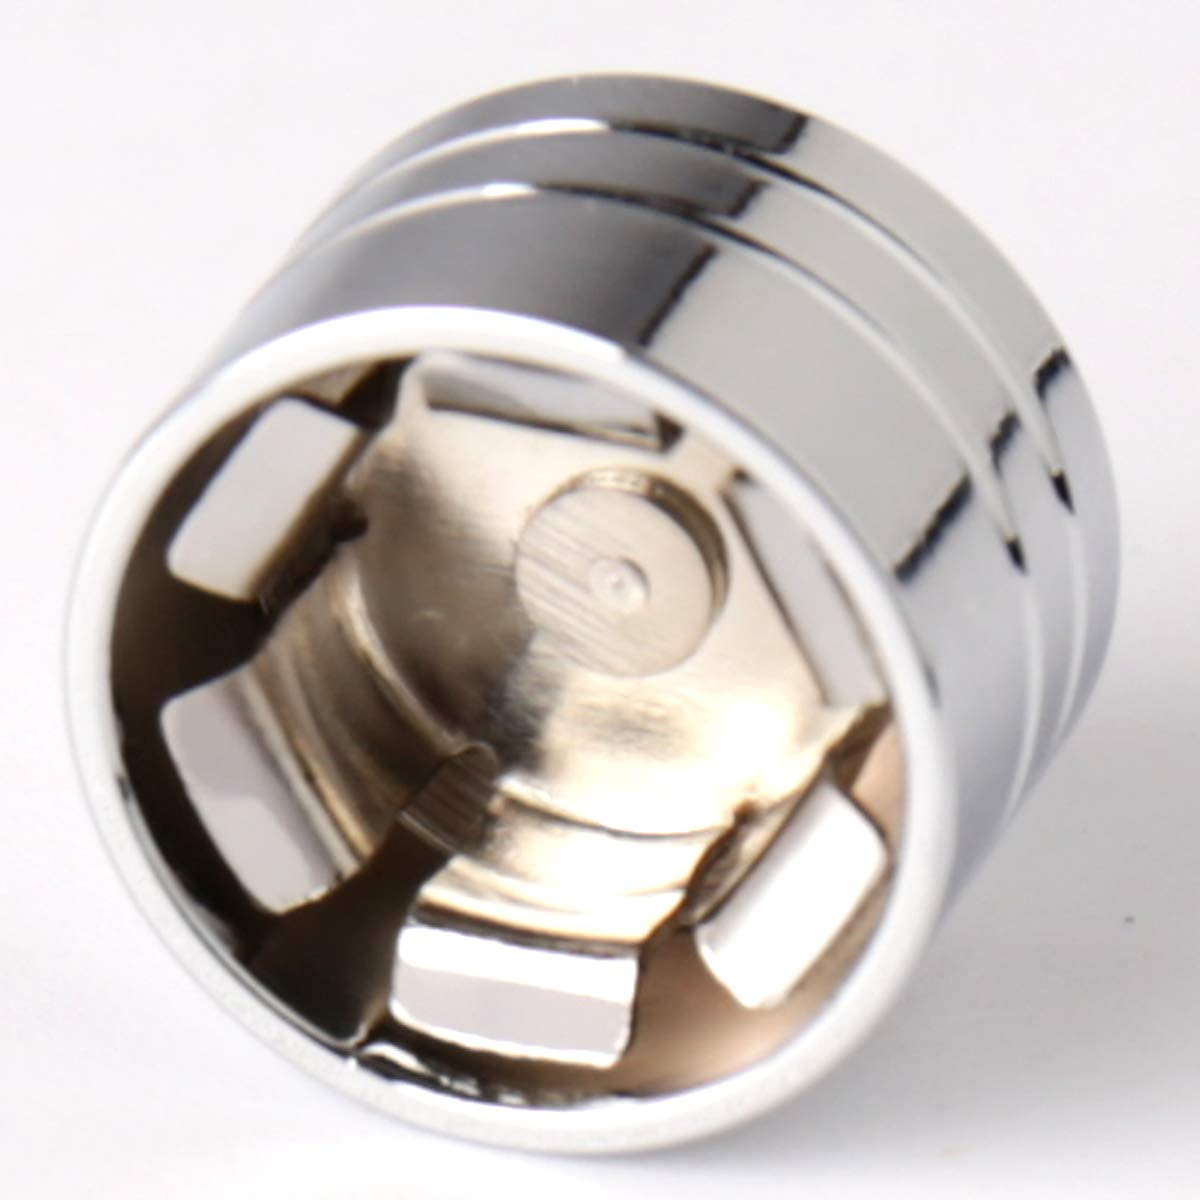 10pcs Chrome CNC Aluminum Push-On Topper 13mm 1//2 Bolt Cap Cover Fit For Harley Cruiser Motorcycle